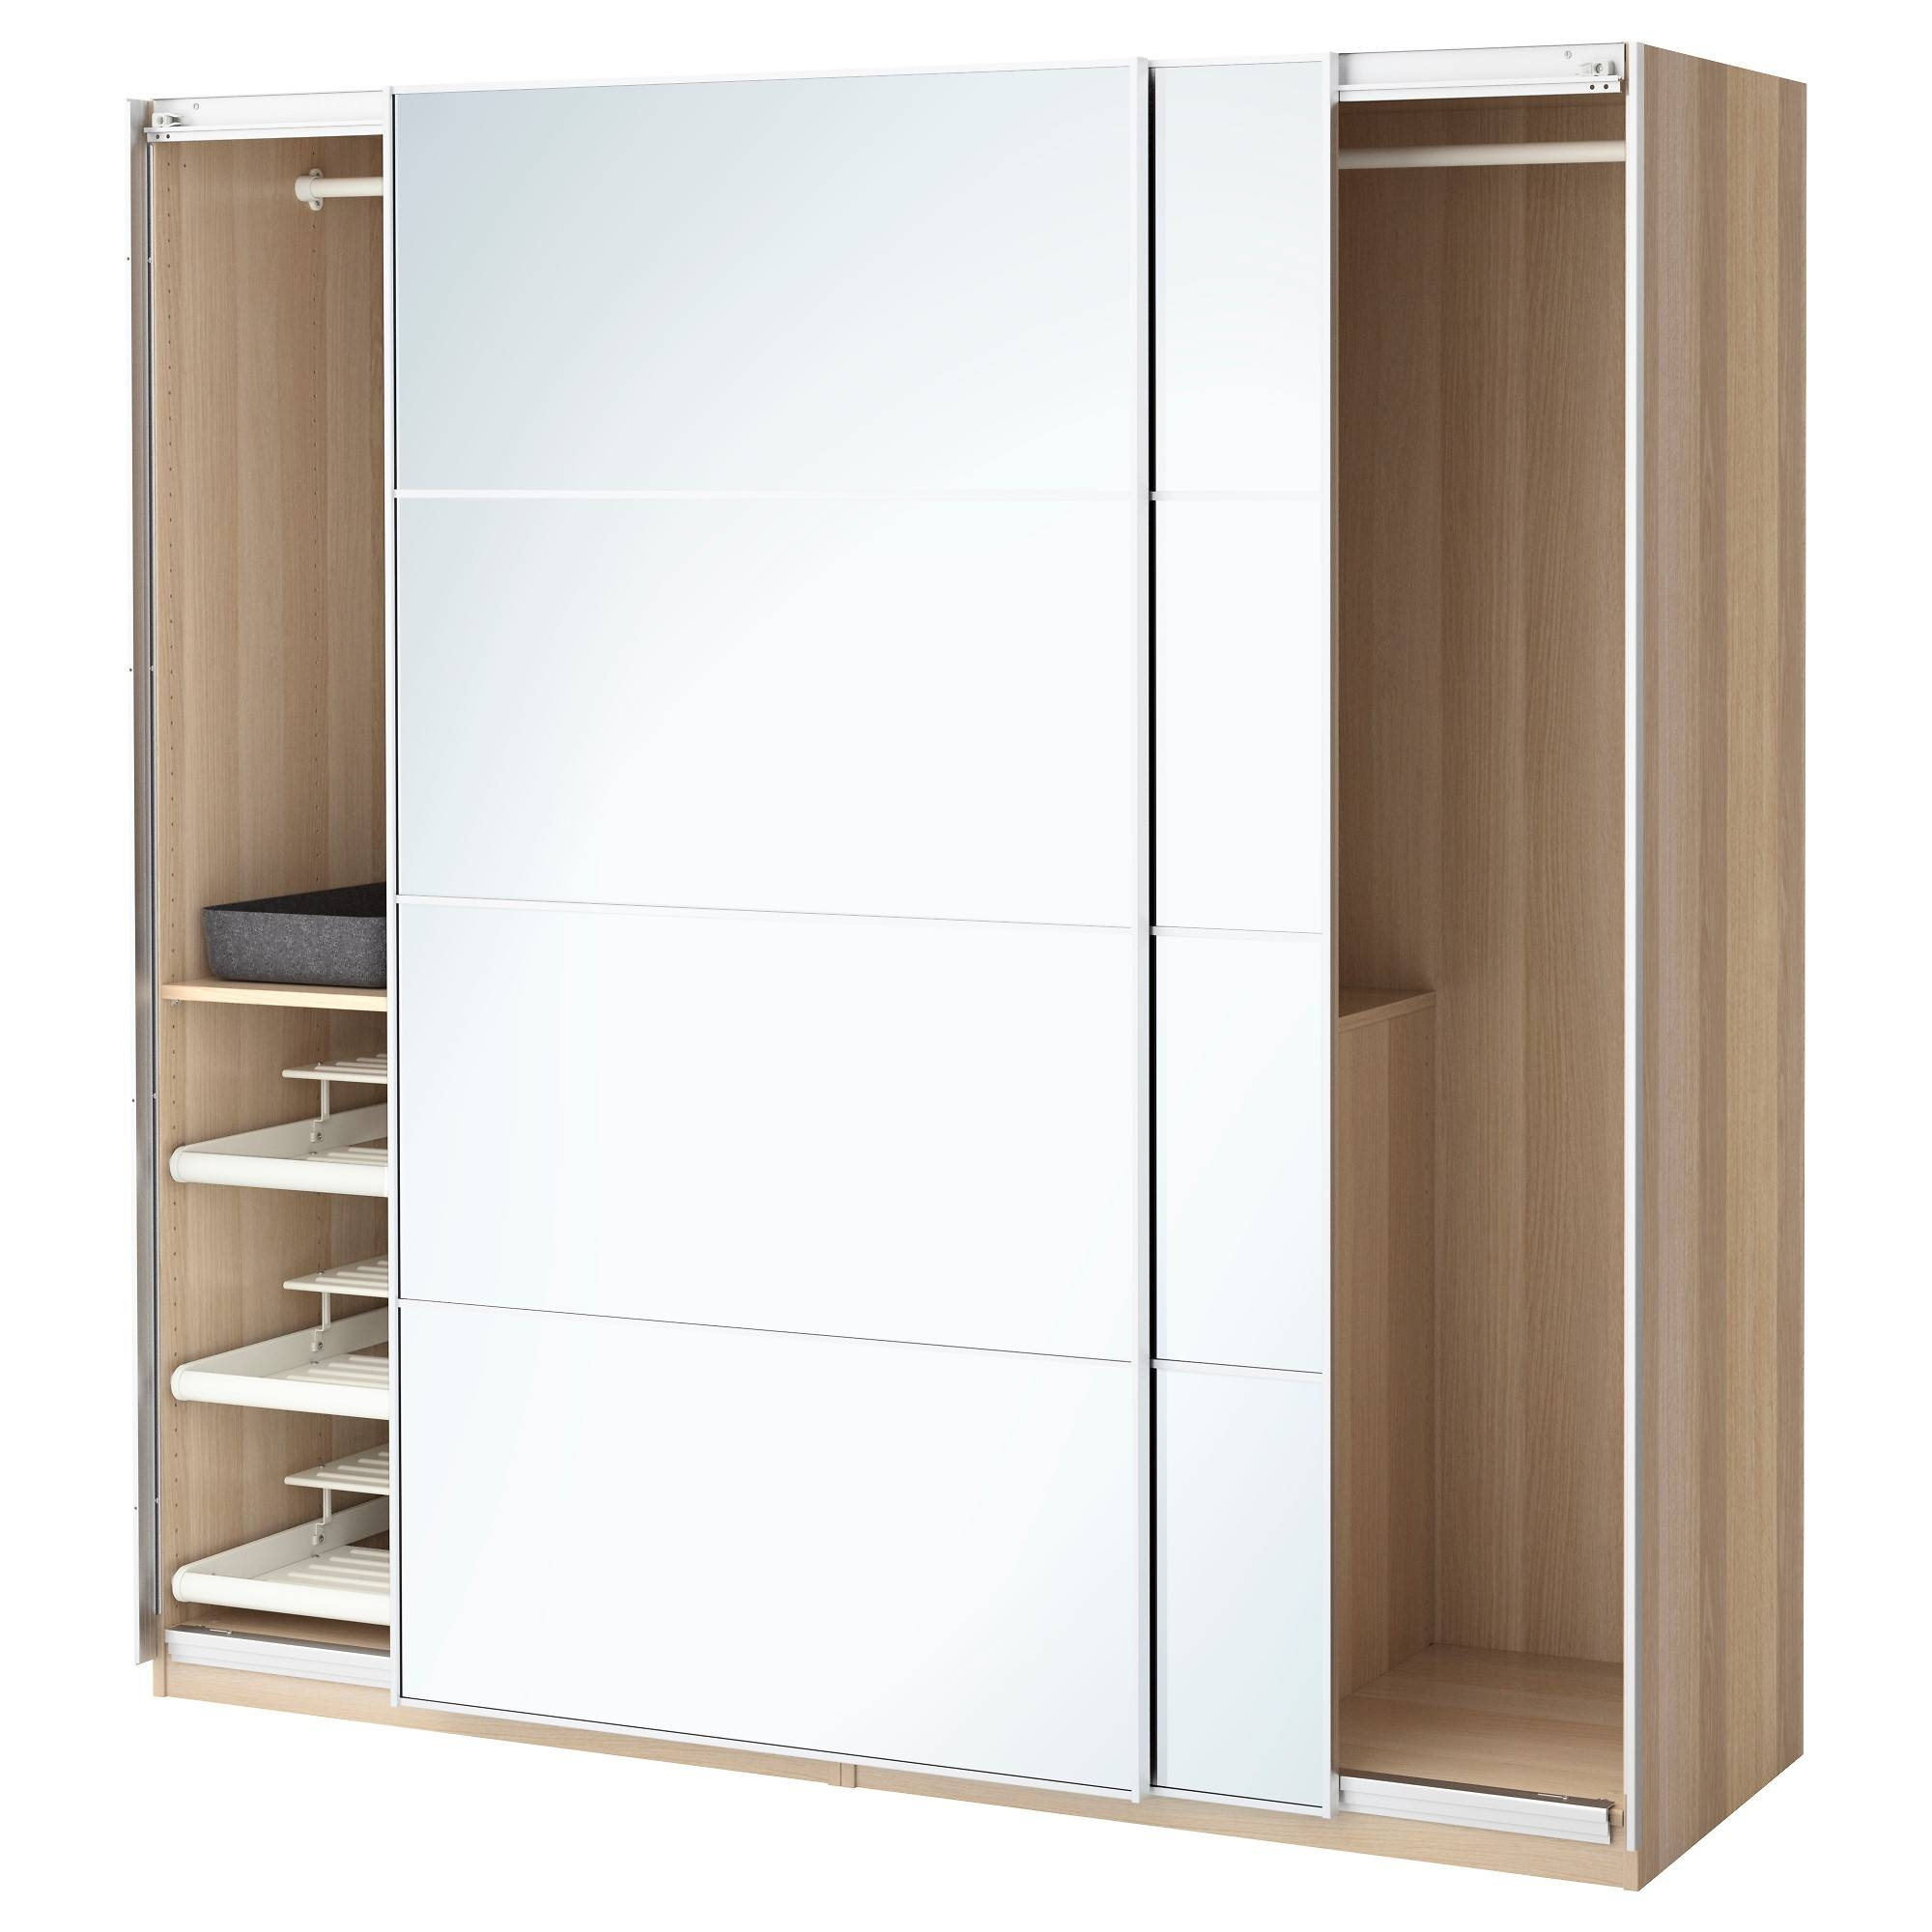 Pax Wardrobe White Stained Oak Effect/auli Mirror Glass 200X66X201 intended for Oak And White Wardrobes (Image 12 of 15)